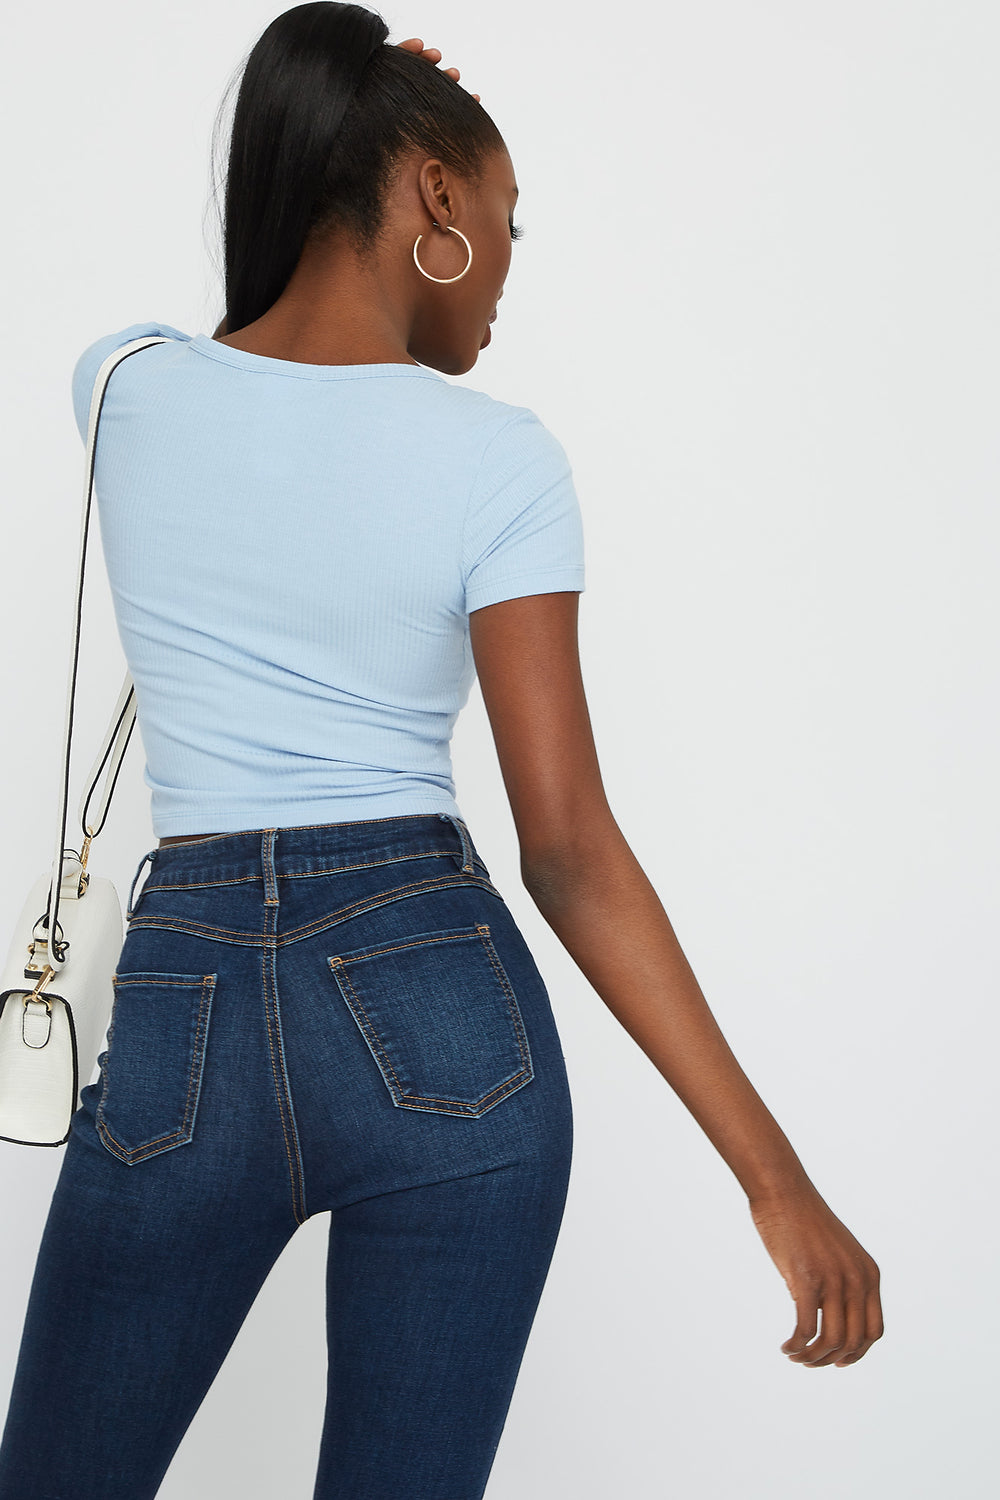 Ribbed V-Neck Button Front Short Sleeve Cropped Top Light Denim Blue